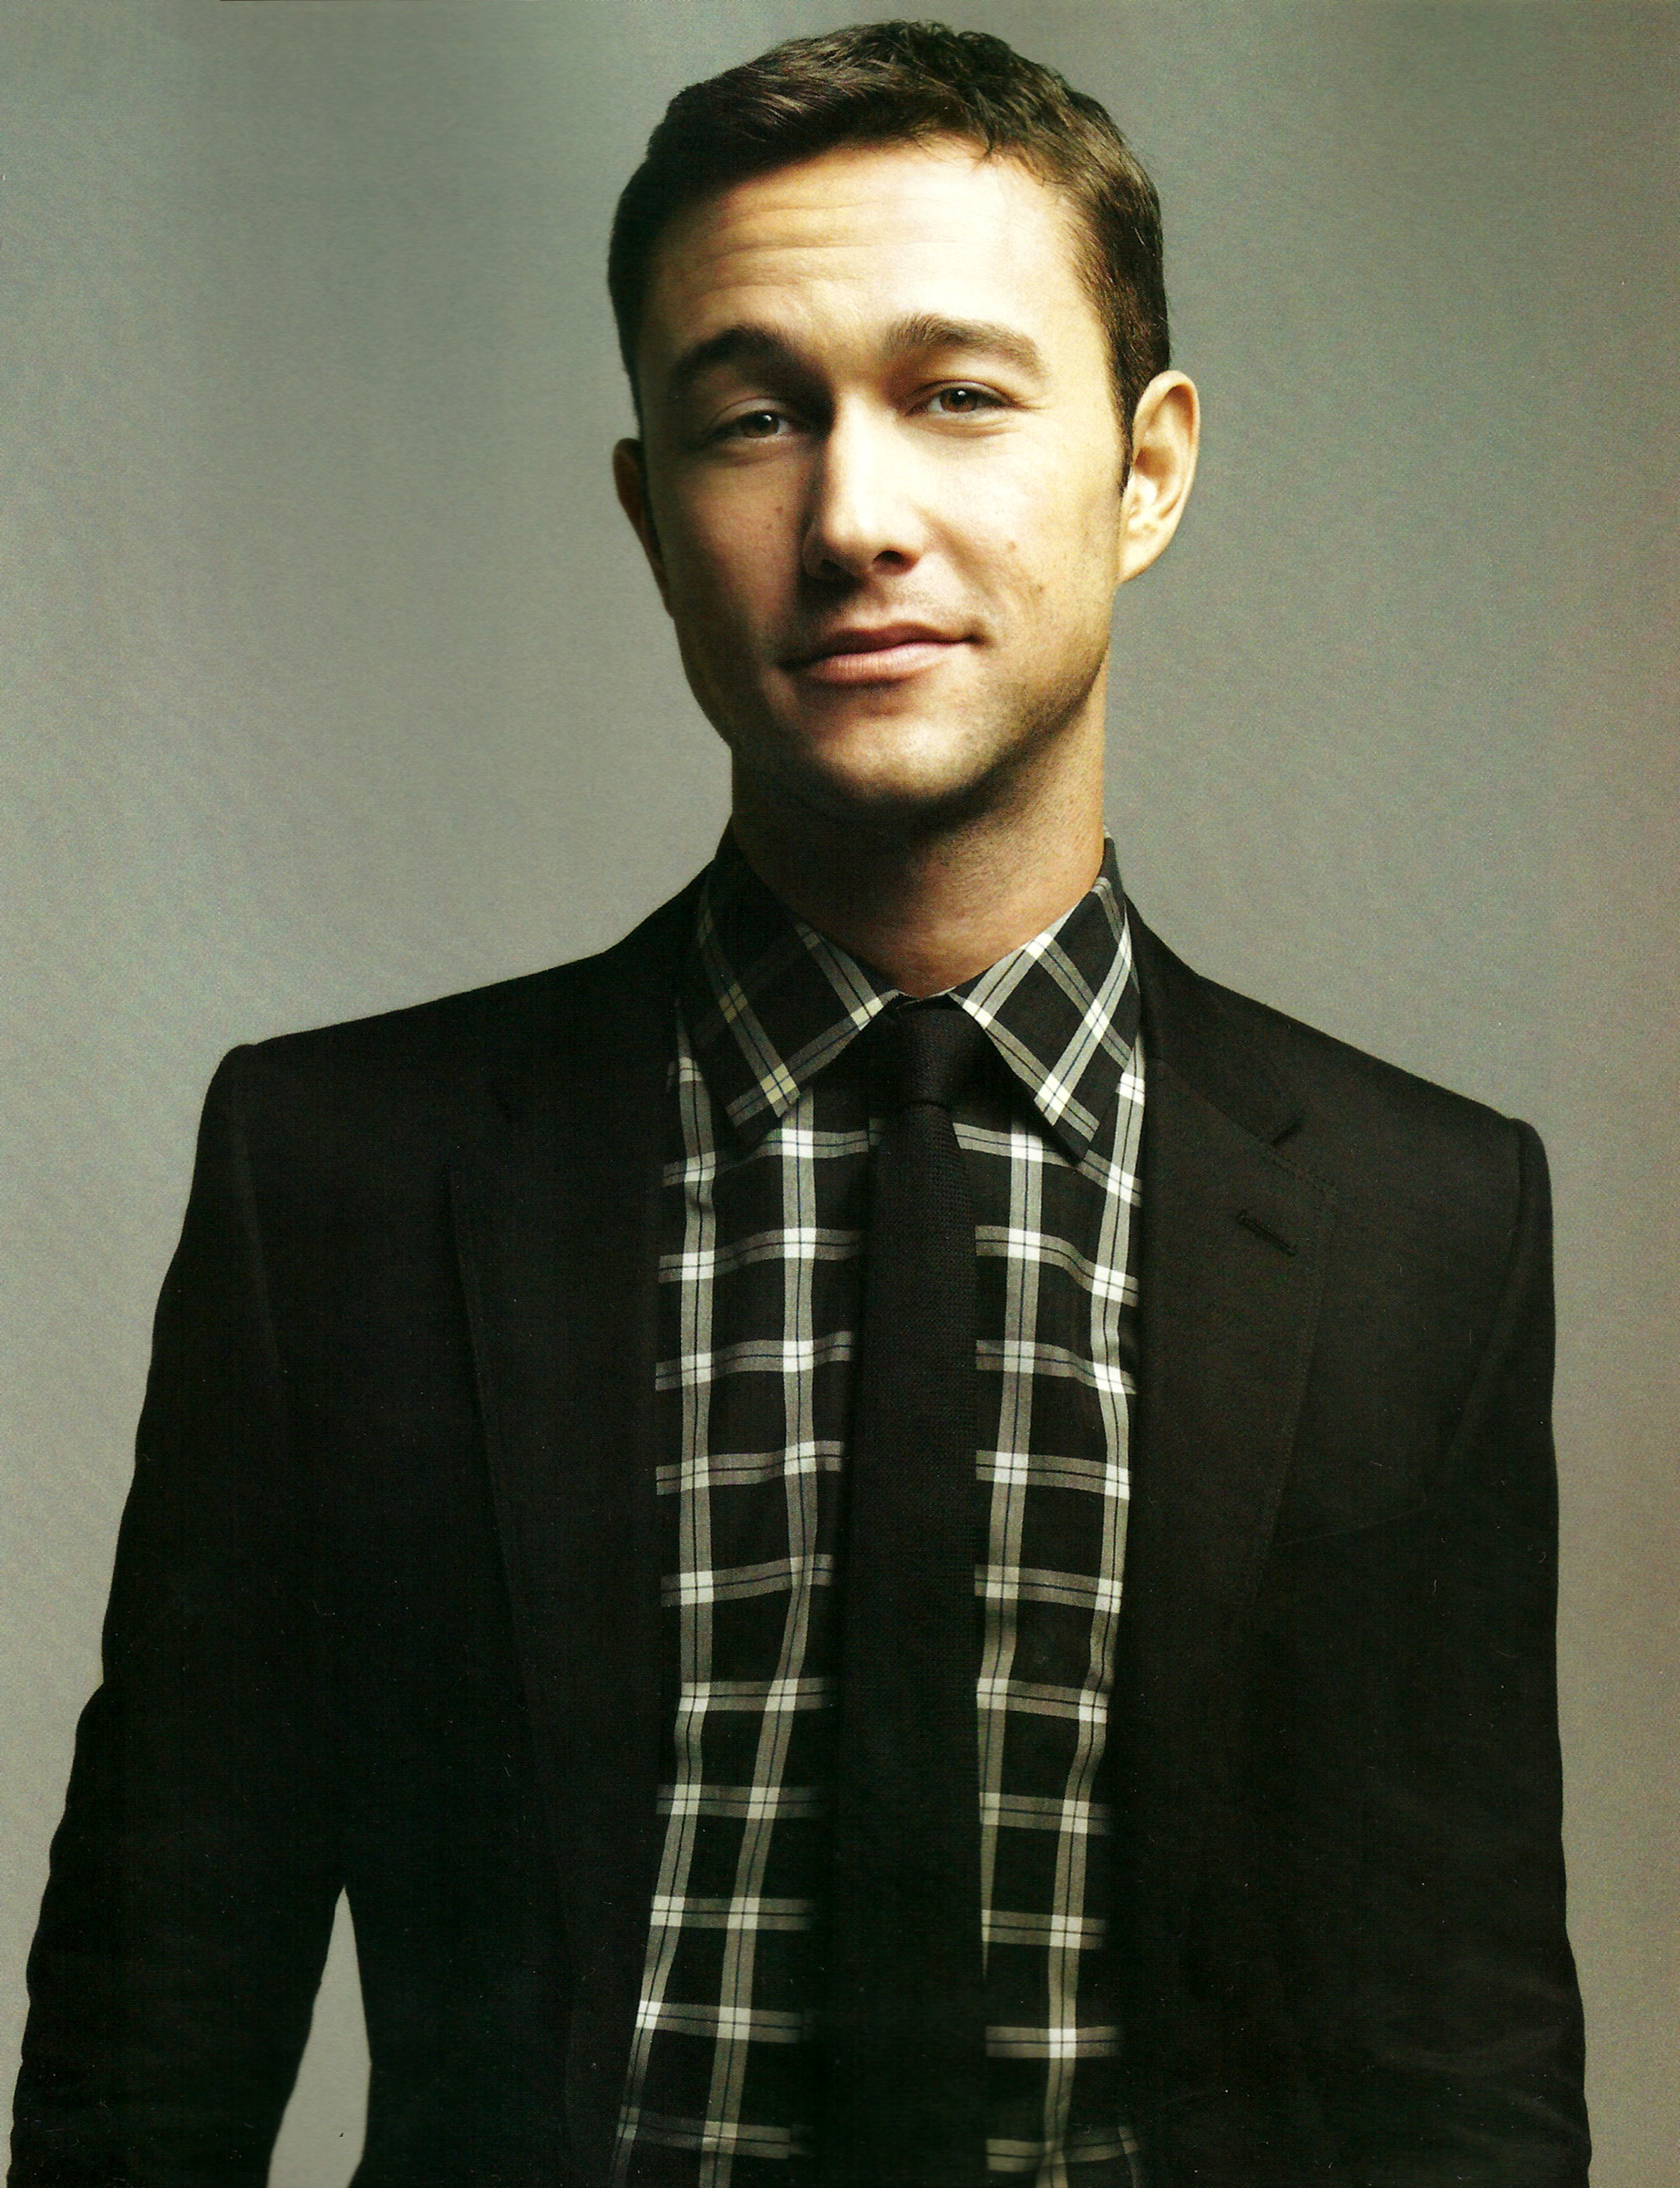 Joseph Gordon-Levitt Wallpapers High Resolution and ... Joseph Gordon Levitt